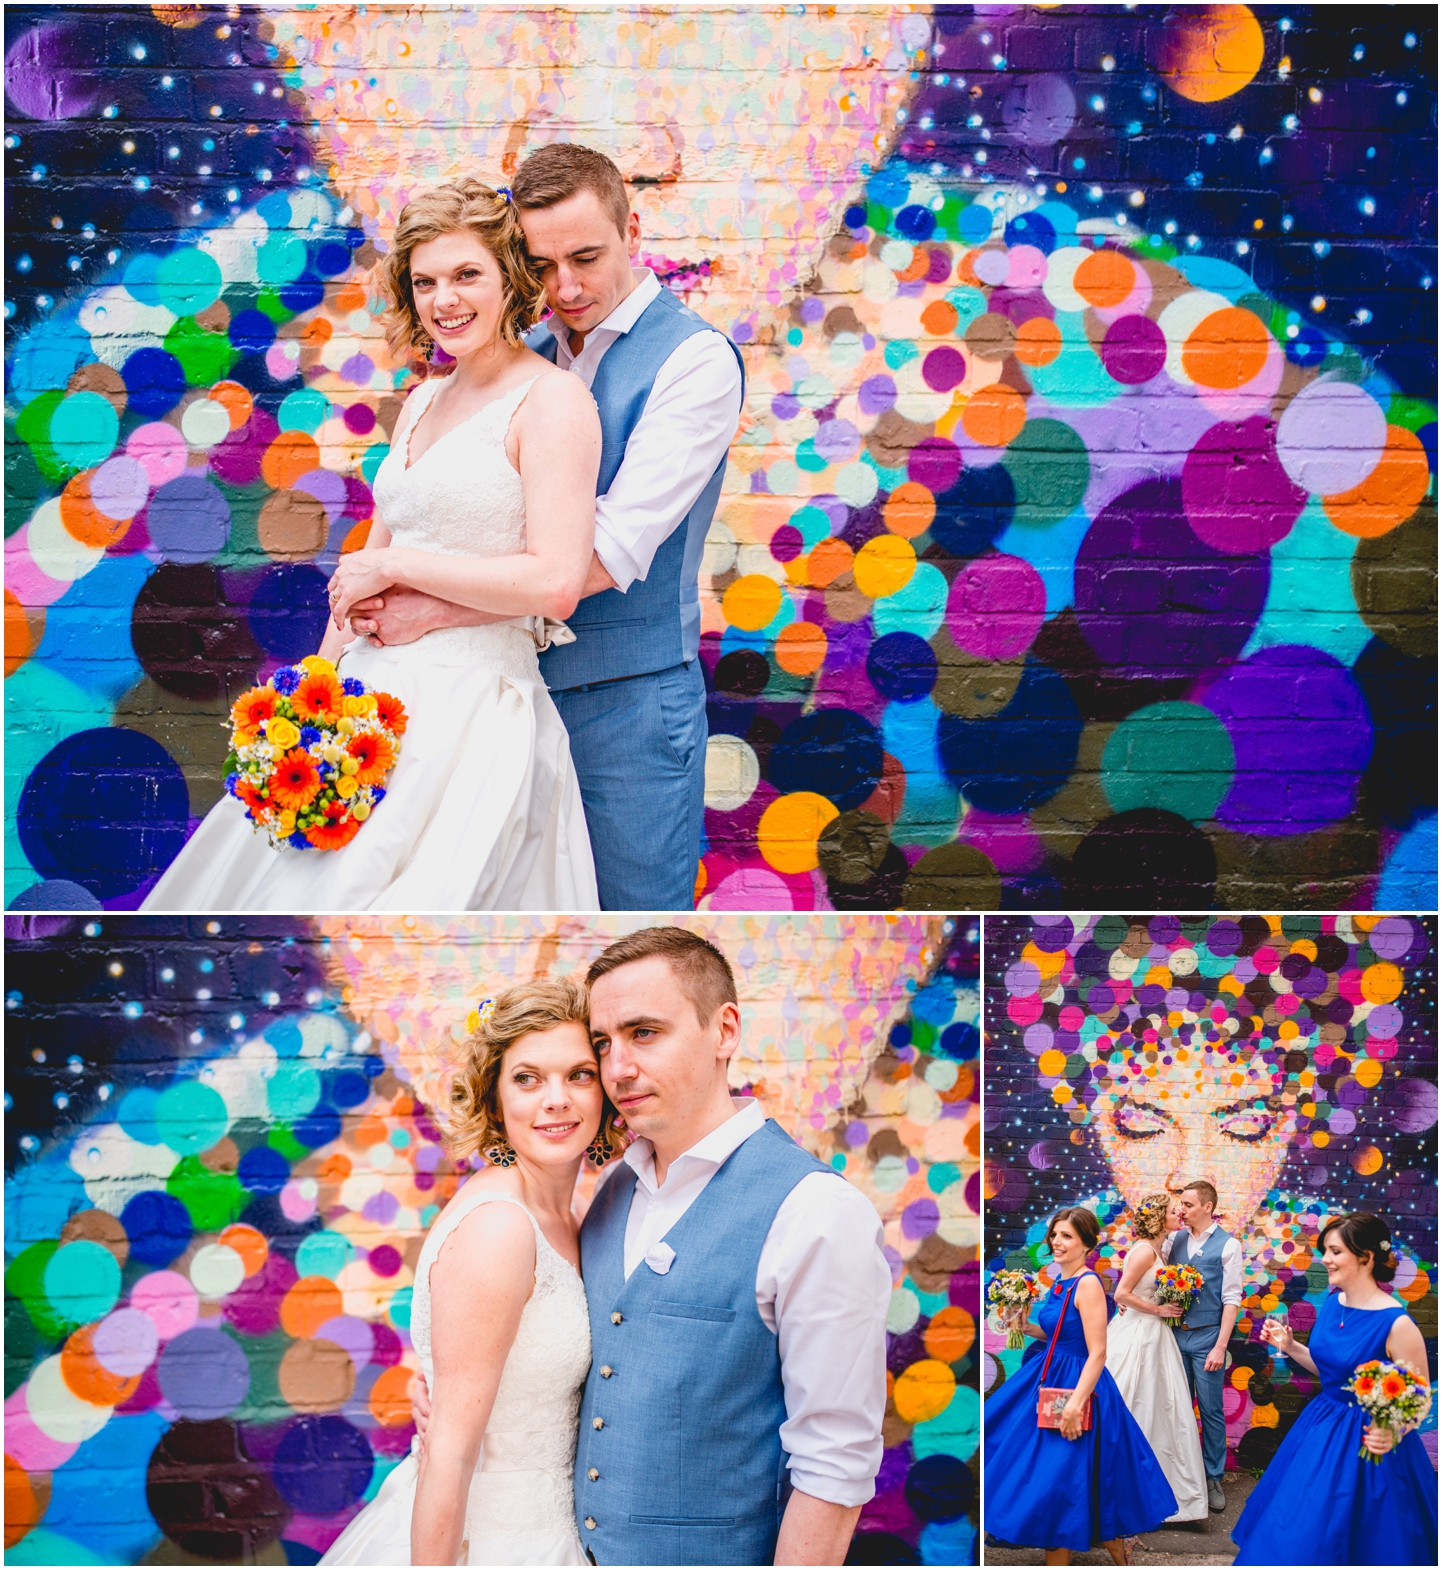 Debra and Matt's colourful Custard Factory Wedding at The Old Library in Digbeth, Birmingham. Photos by Lisa Carpenter Photography, West Midlands based wedding photographer, graffiti